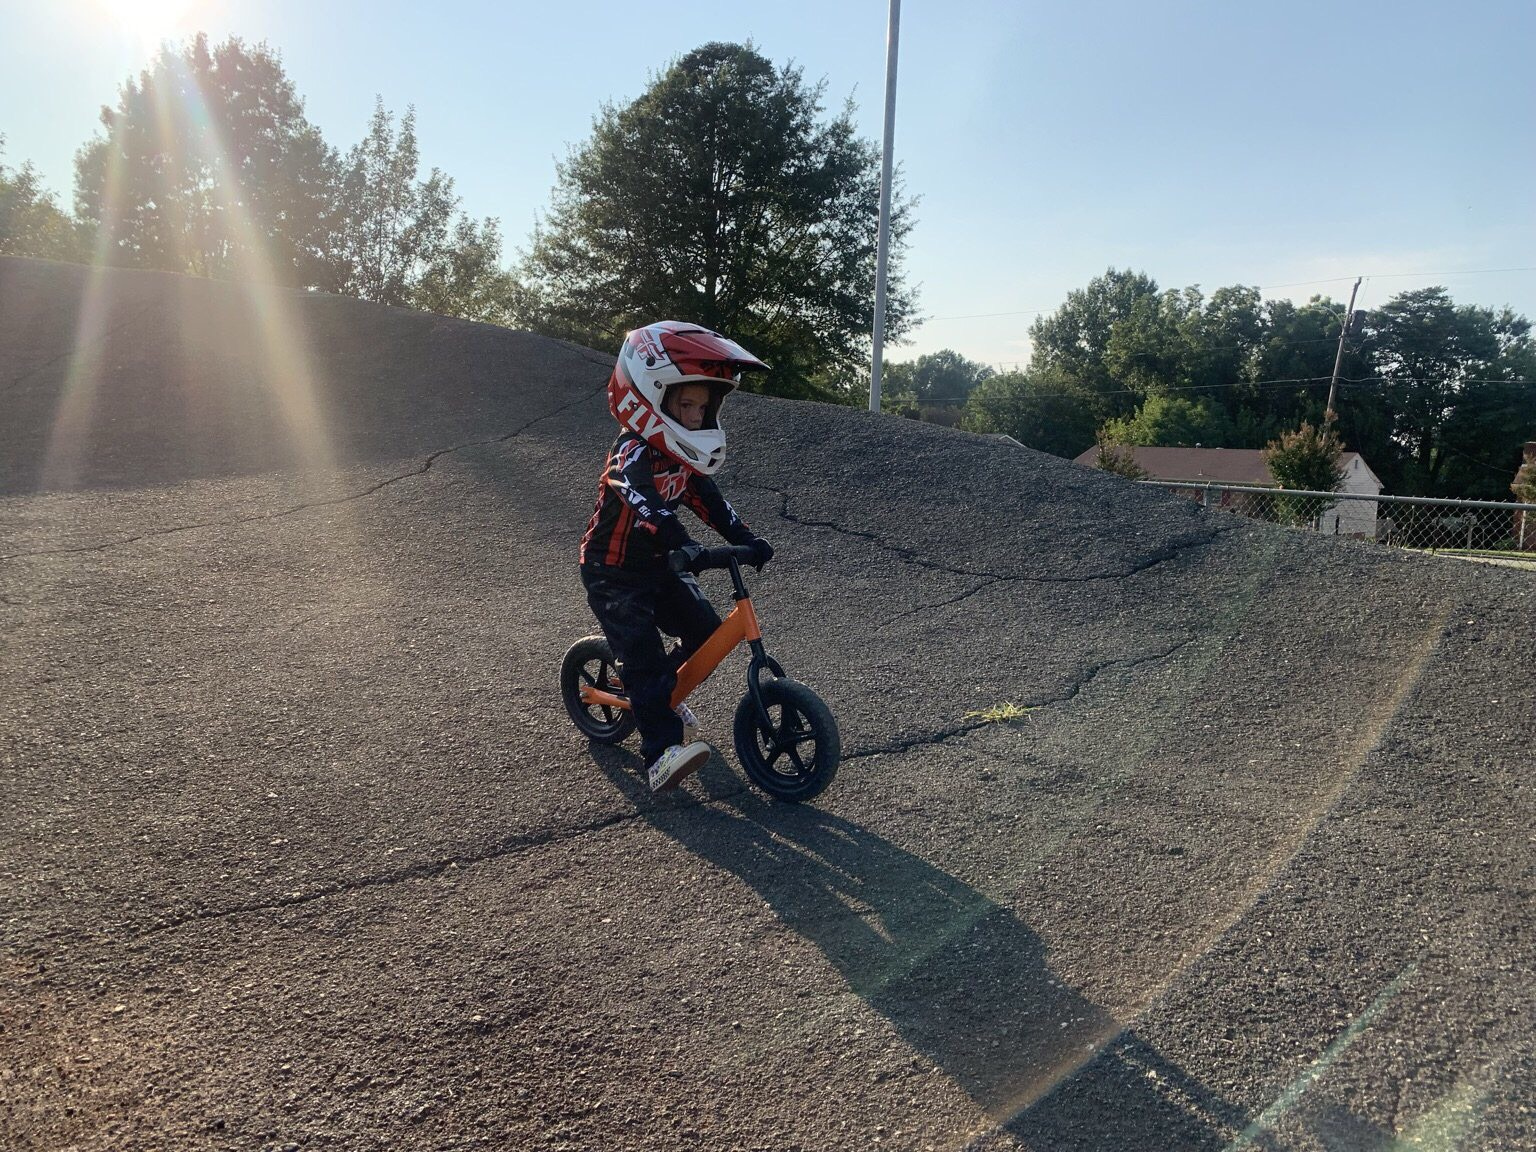 Quest Student is competing in BMX